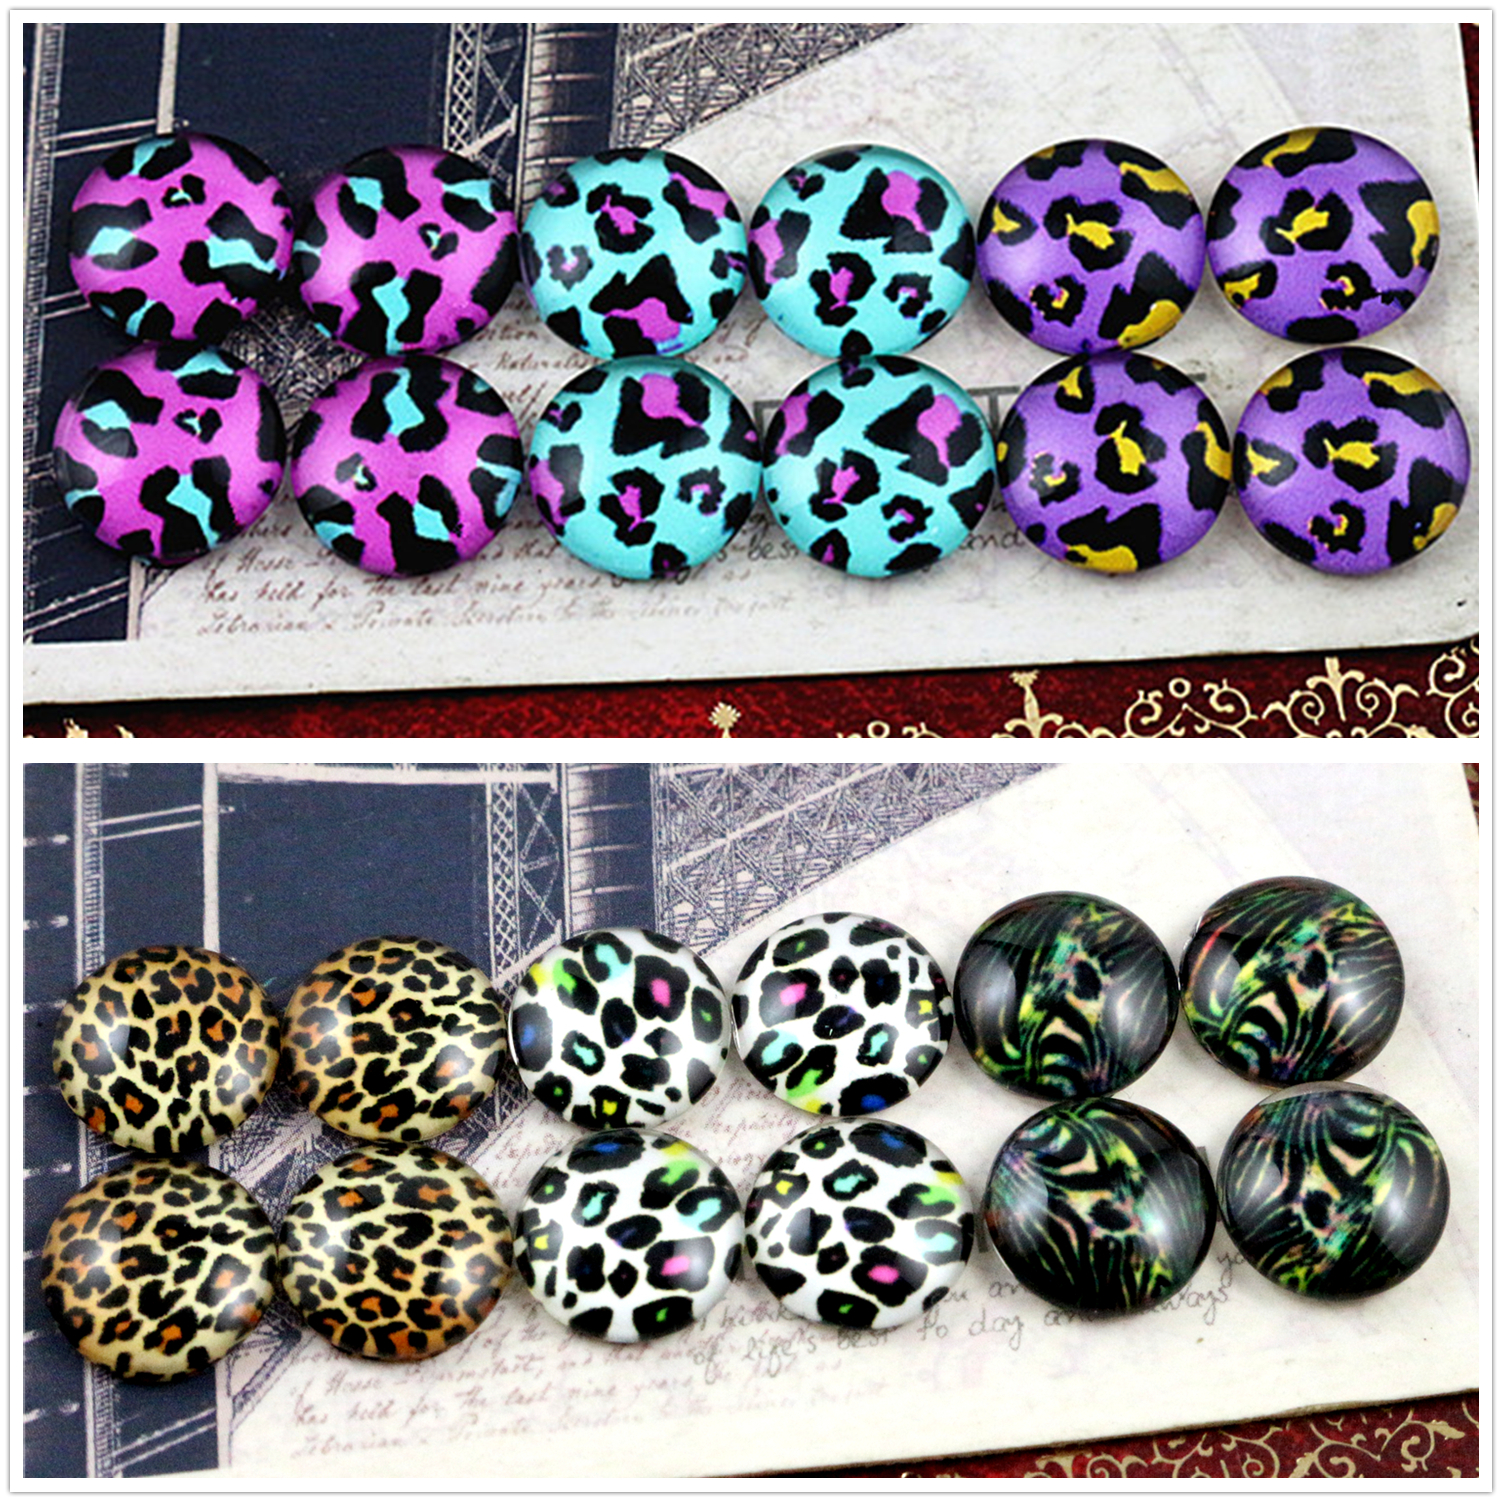 12pcs/lot (One Set) Two Style Fit 12mm Fashion Zebra Leopard Handmade Glass Cabochons Pattern Domed Jewelry Accessories Supplies